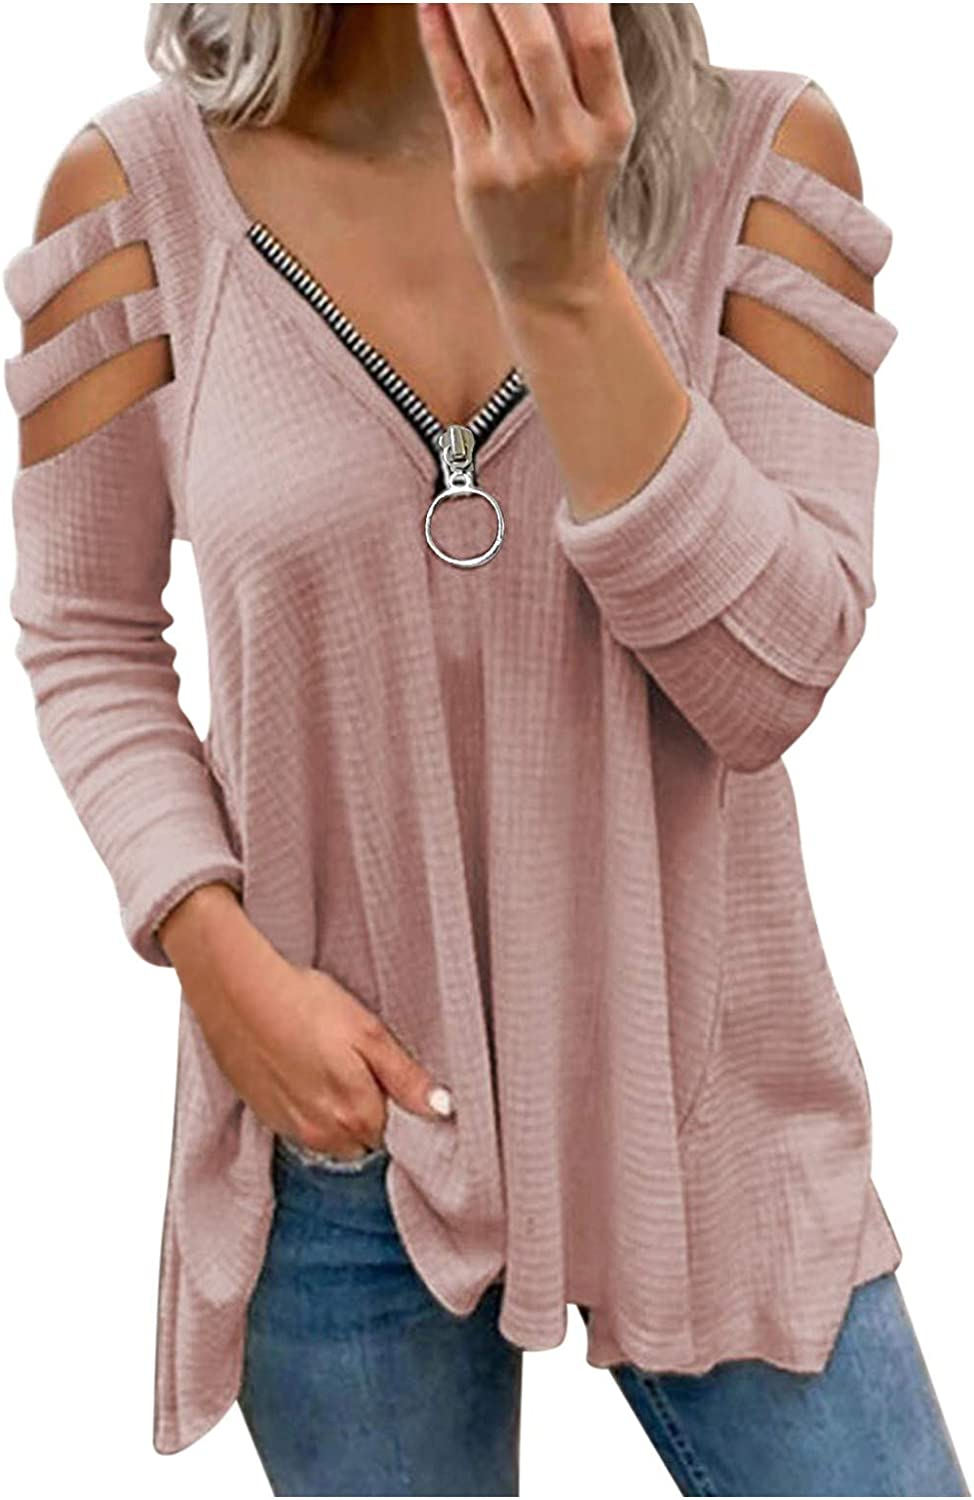 Women's Off The Shoulder Tops Plus Size Fashion Loose Fit Zip Up Hollow Lace T Shirts 3/4 Sleeve Blouses Printing Tunic